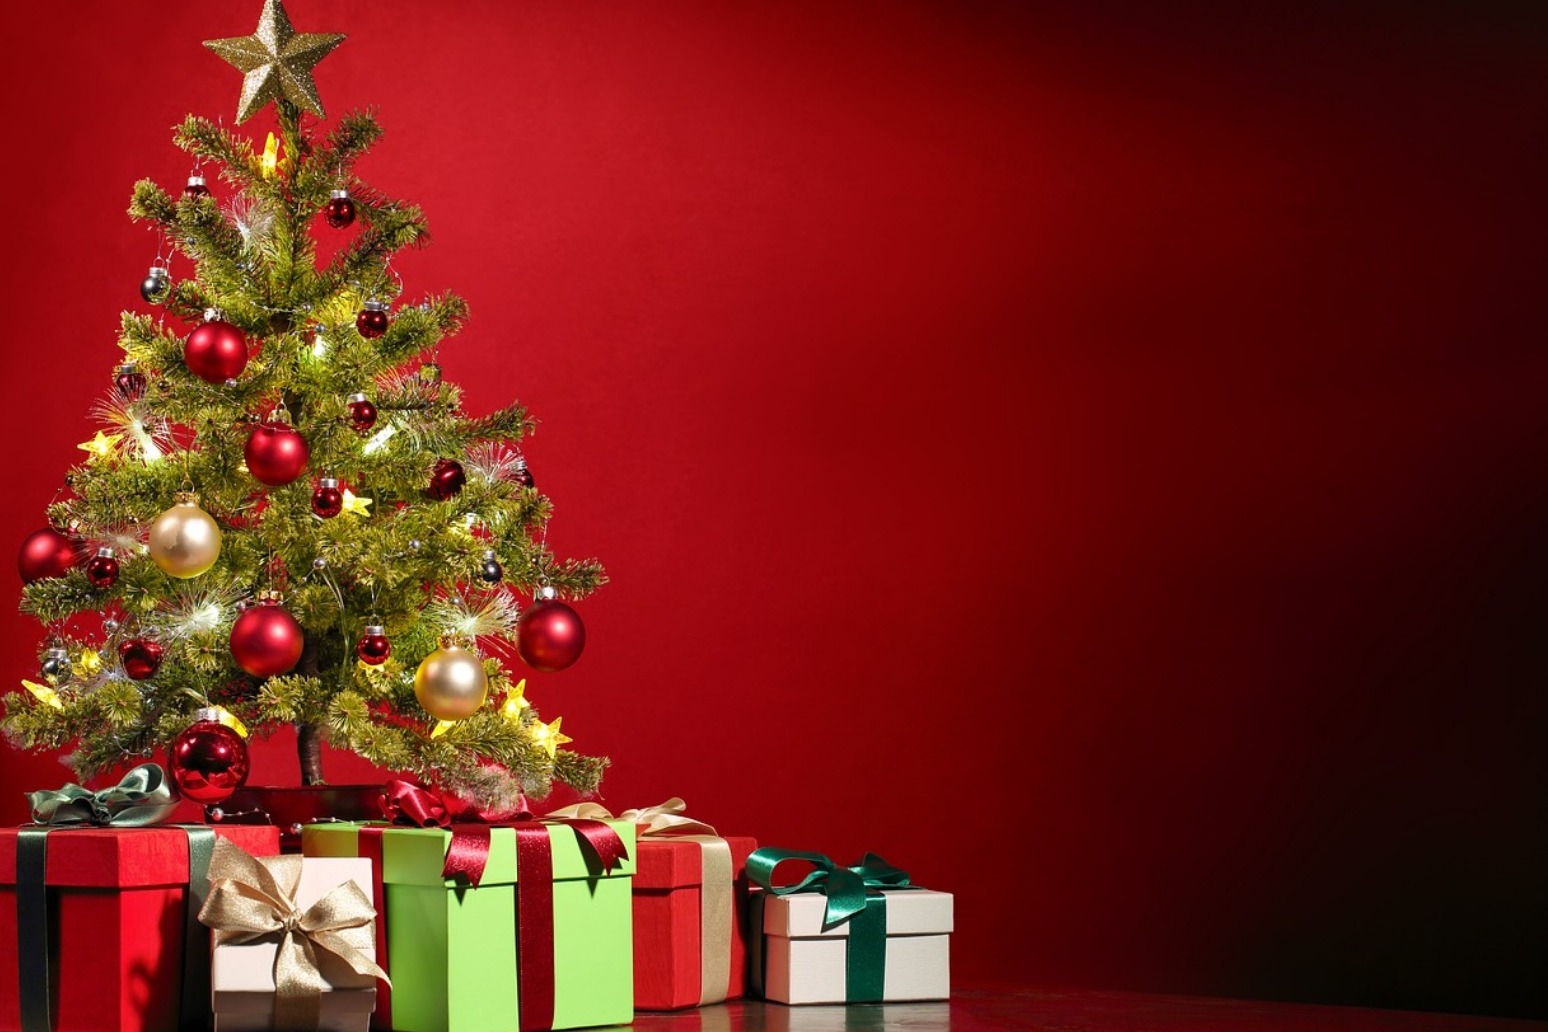 Most Millennials disappointed with Christmas gifts